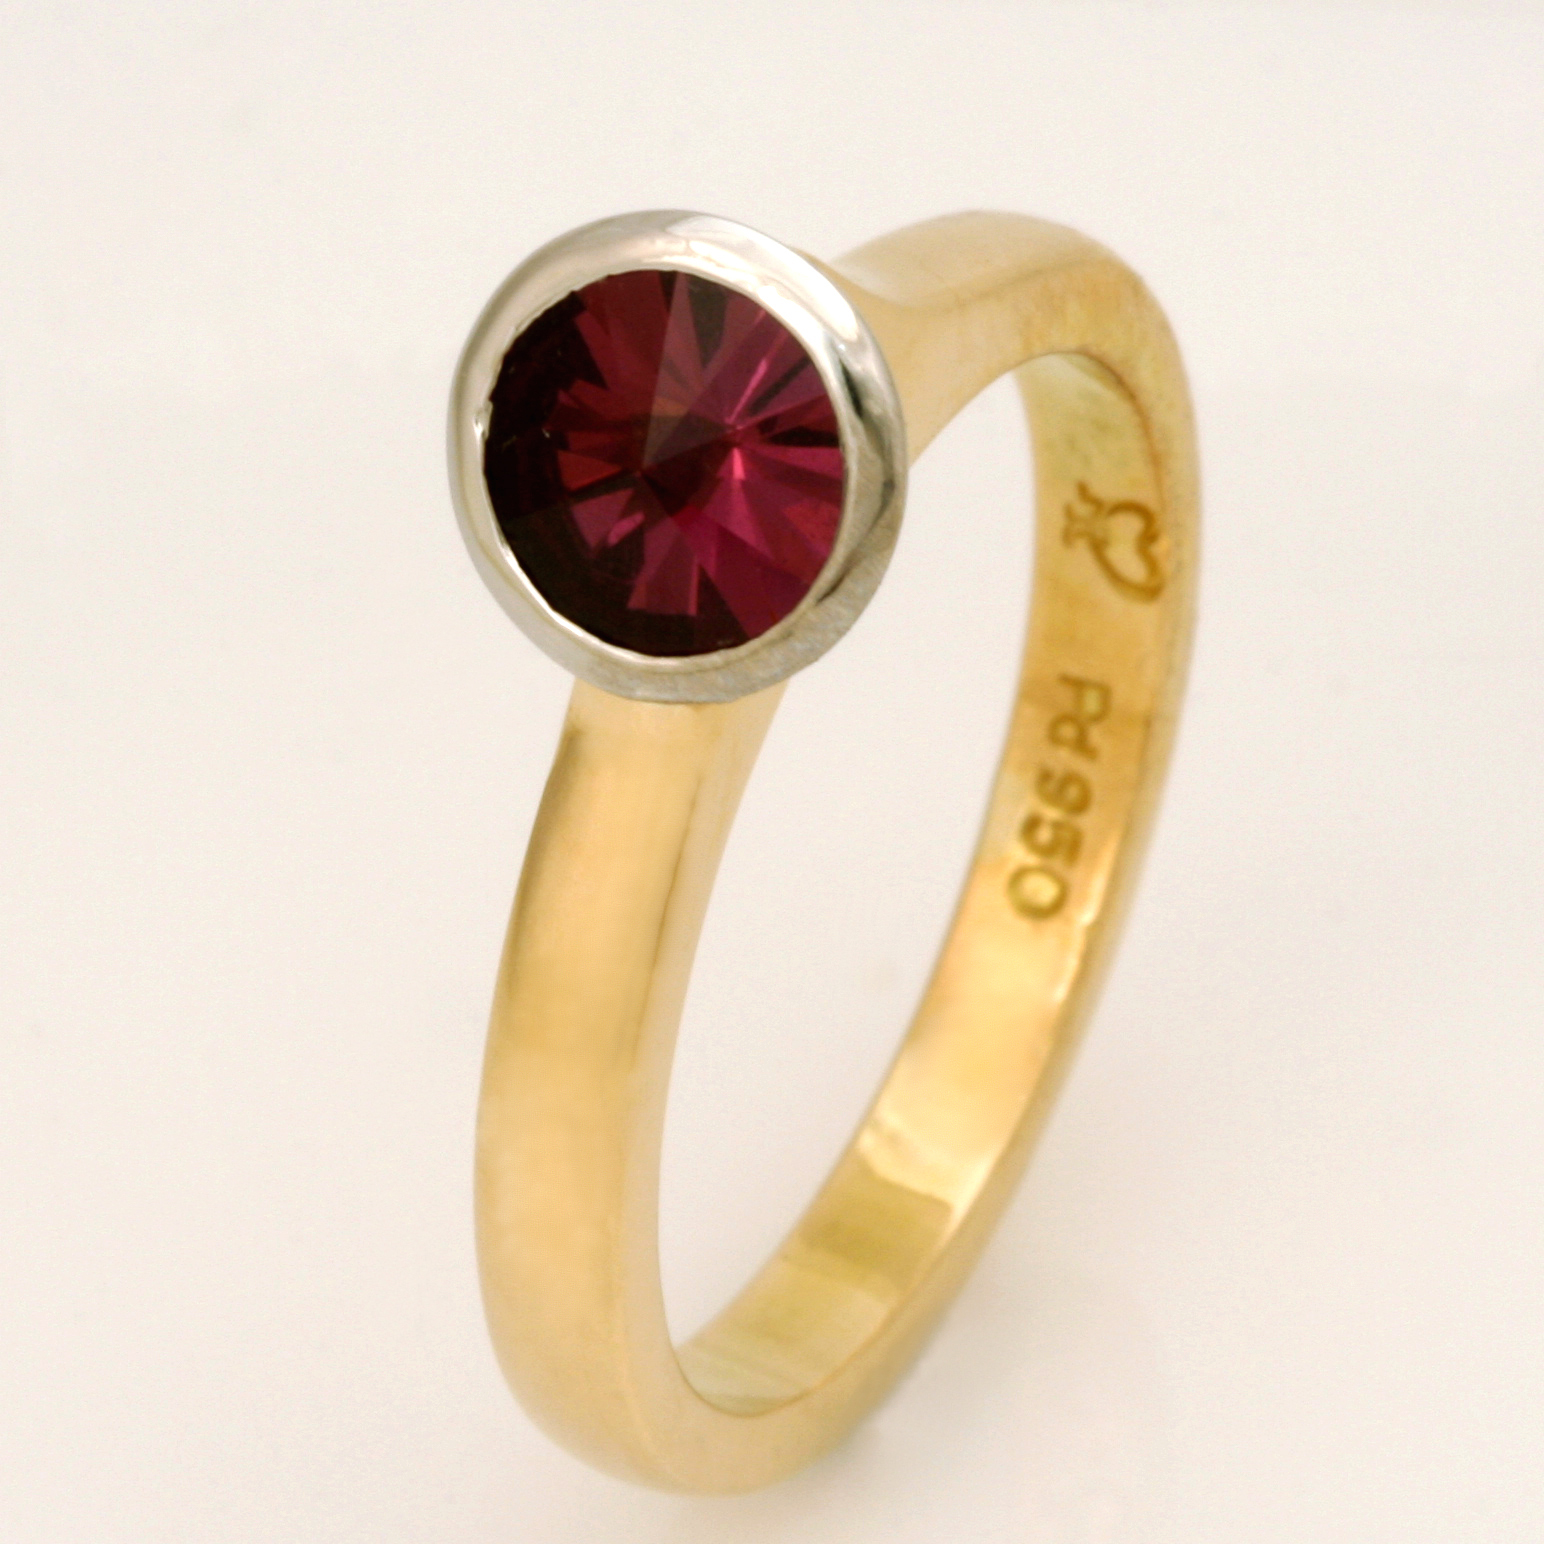 Handmade ladies 18ct yellow gold and palladium ring featuring a Spirit cut rhodolite garnet